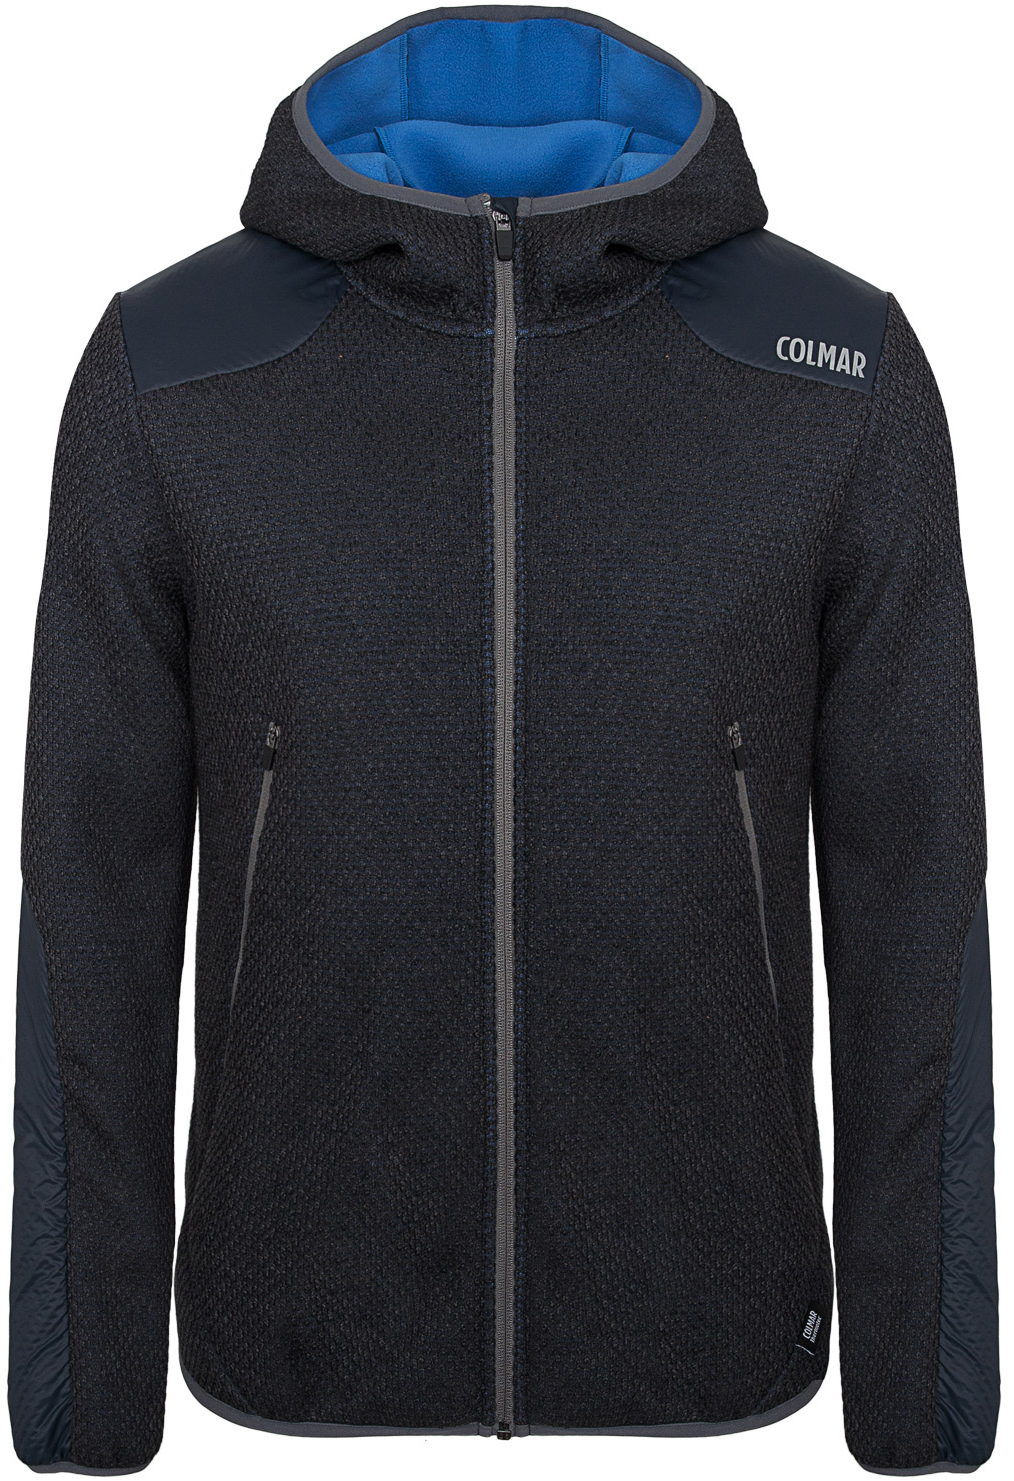 Colmar Джемпер мужской Colmar Knitted Fleece